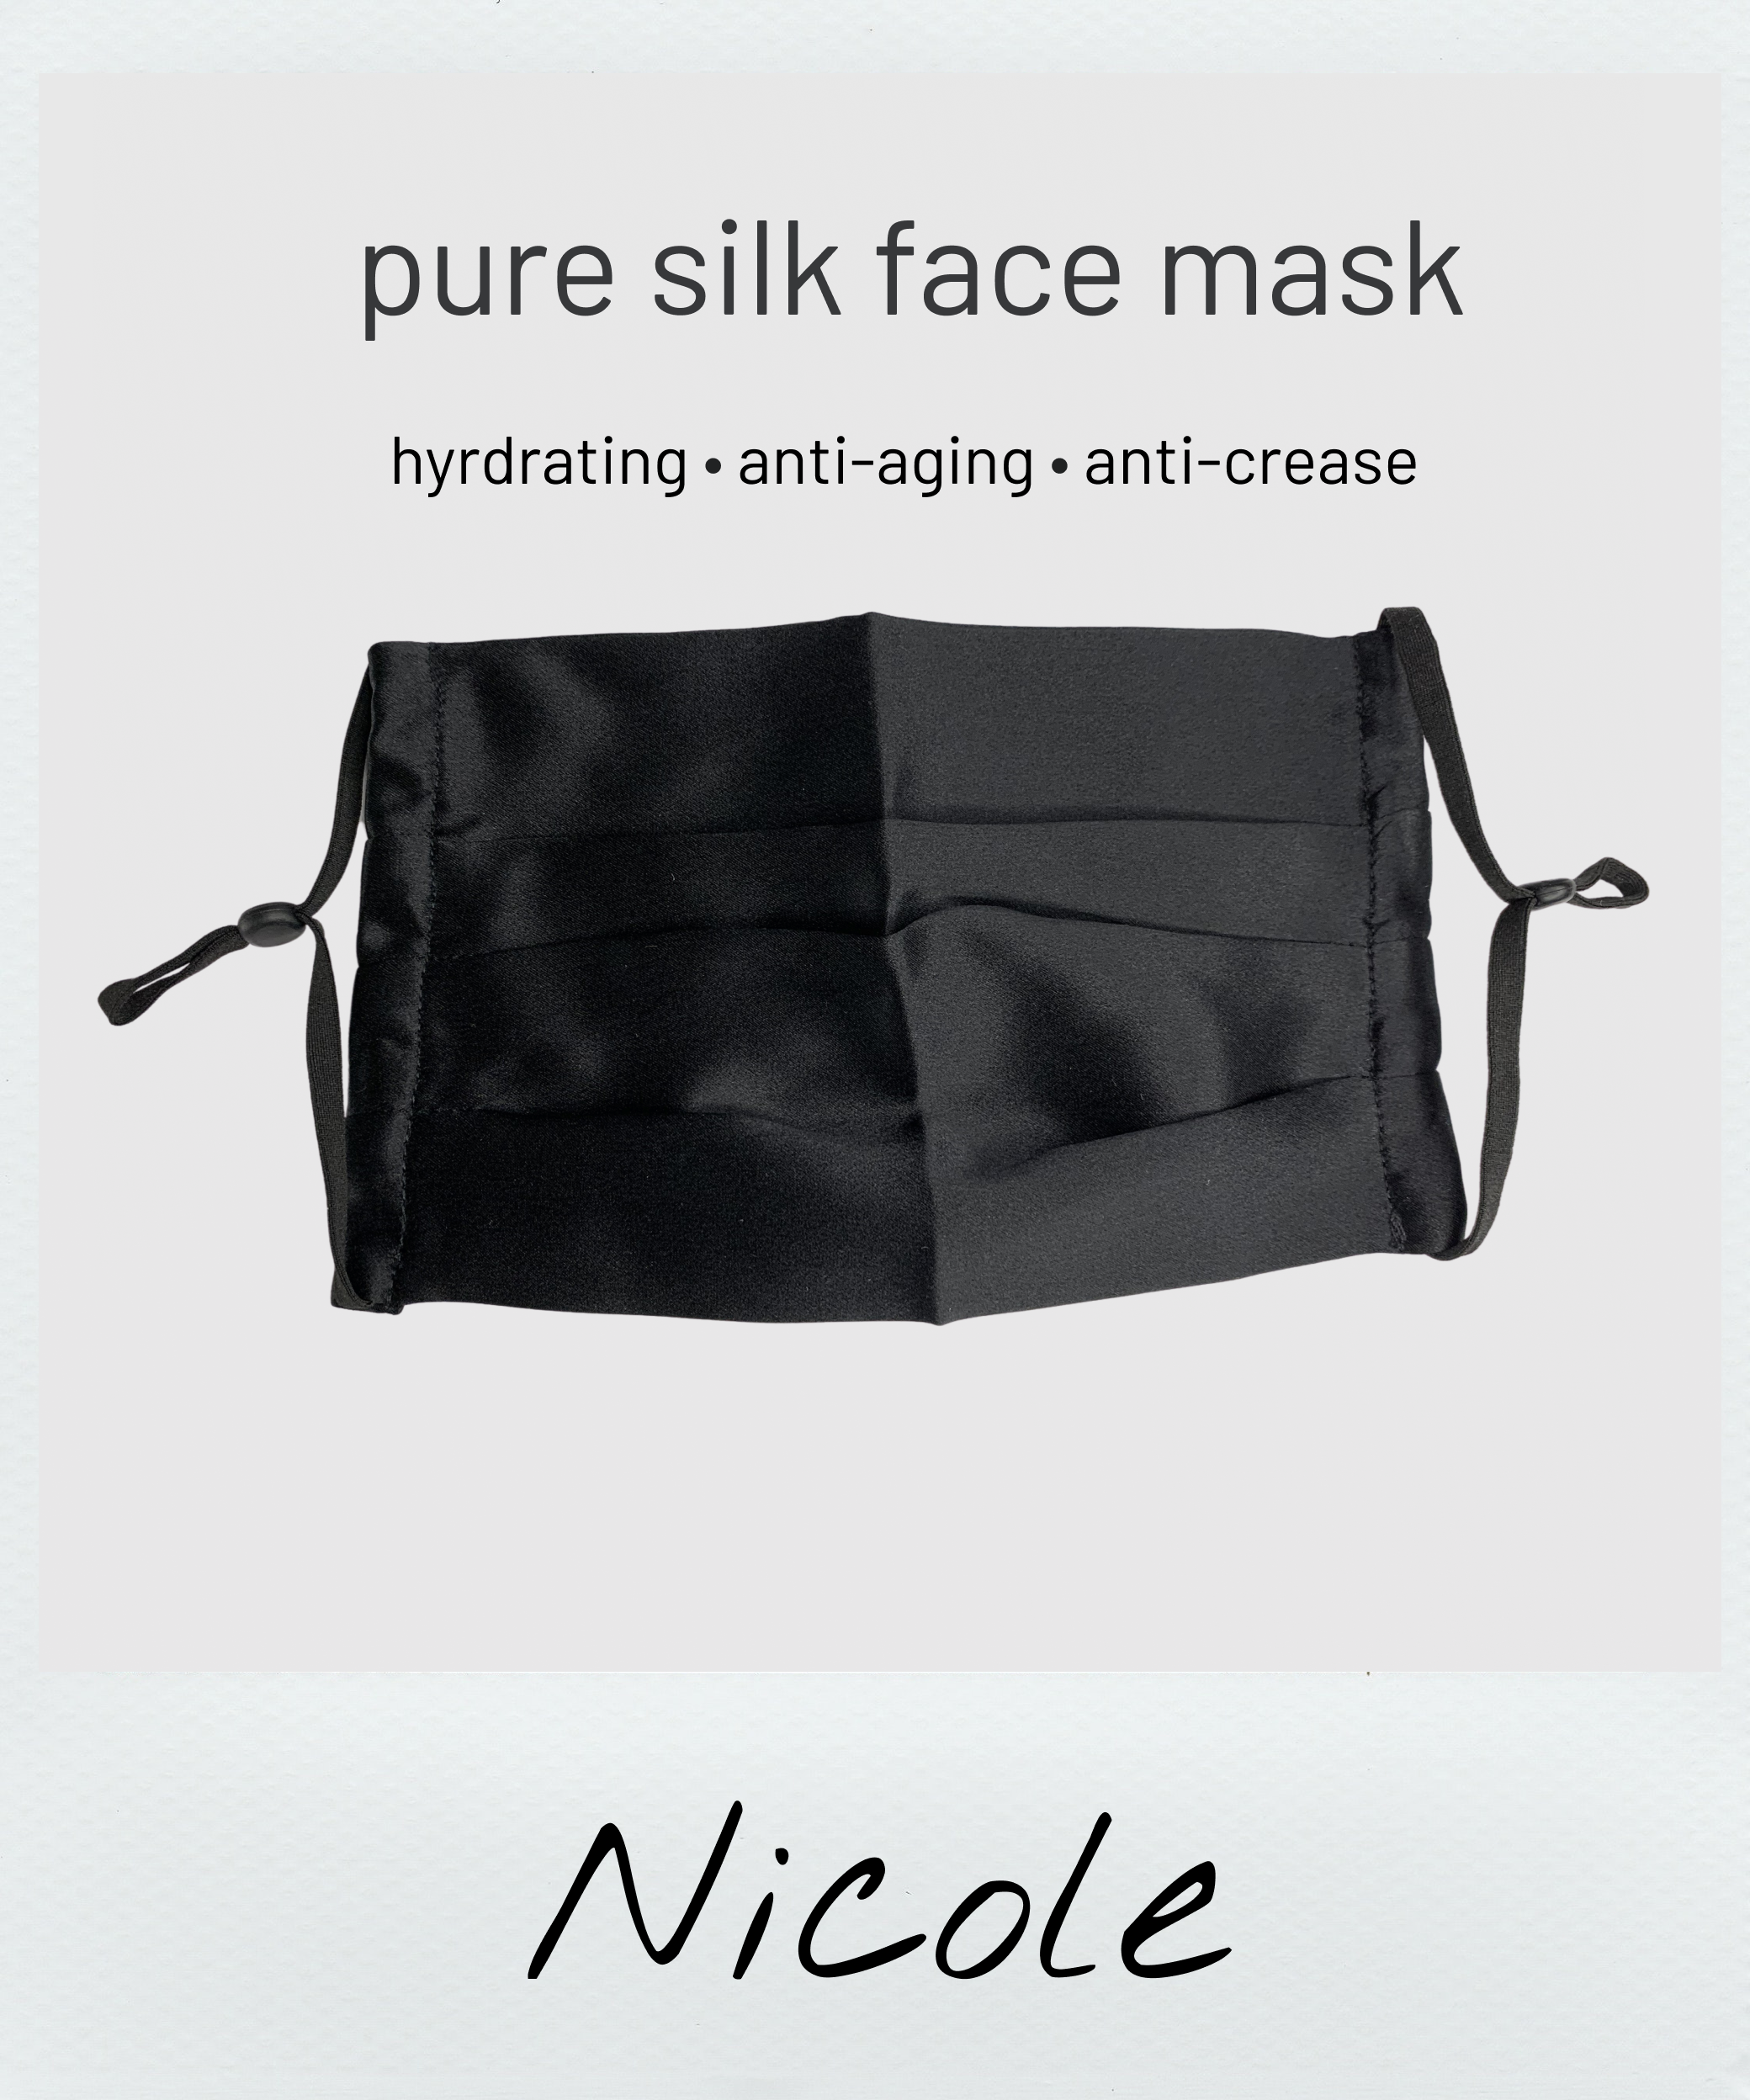 silk face mask for acne